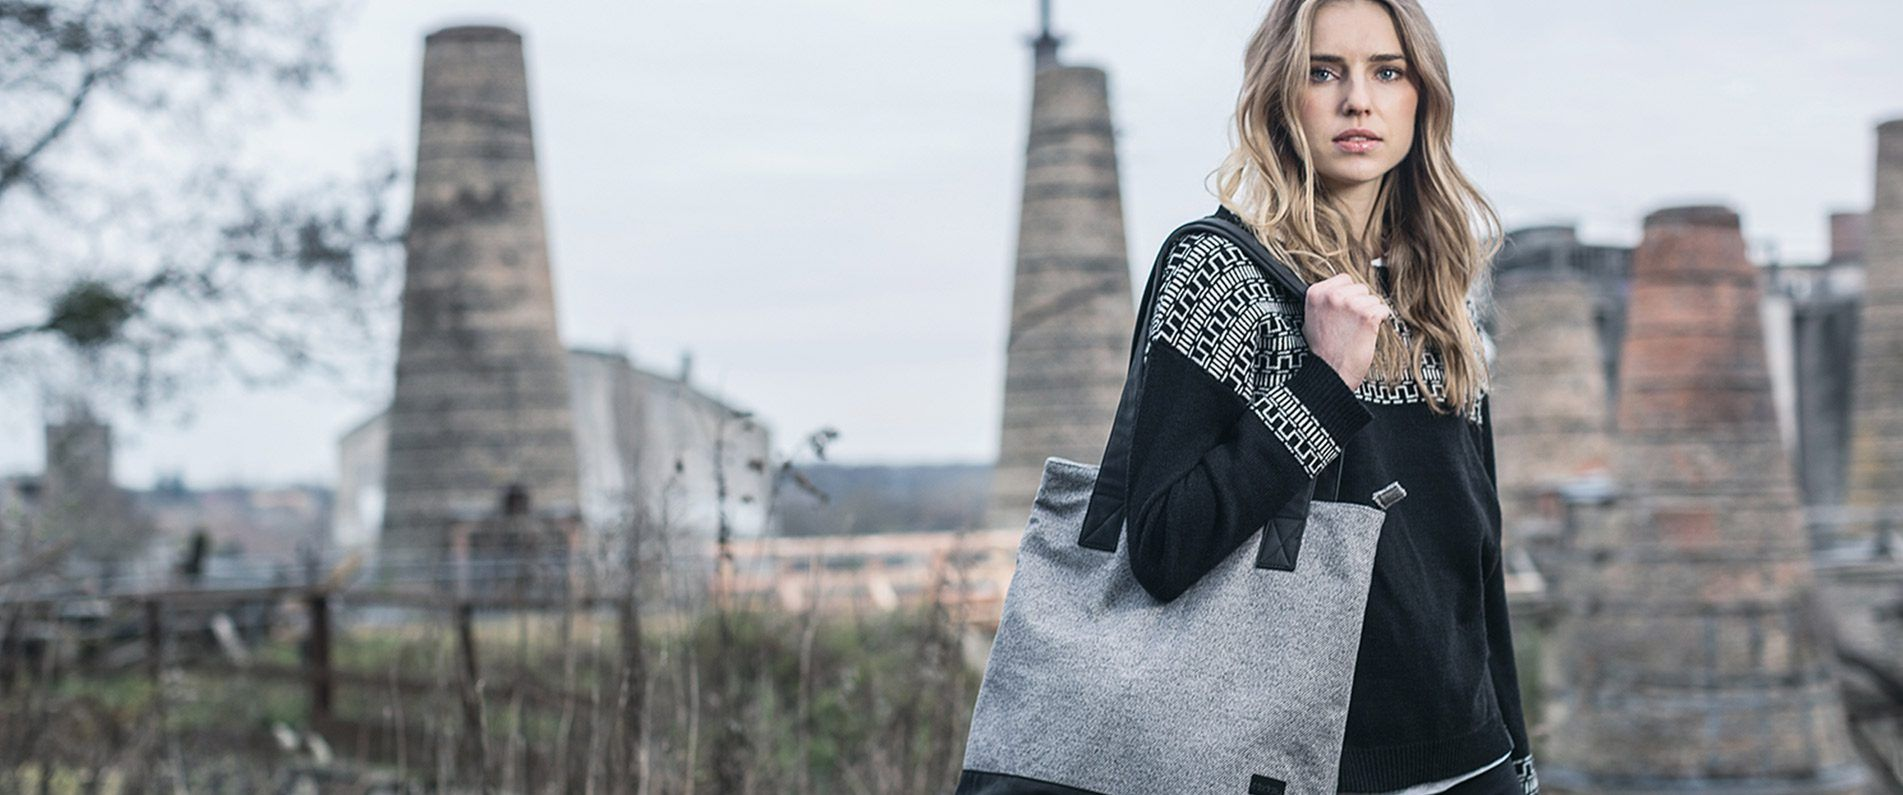 Stylish streetwear for women from Iriedaily.